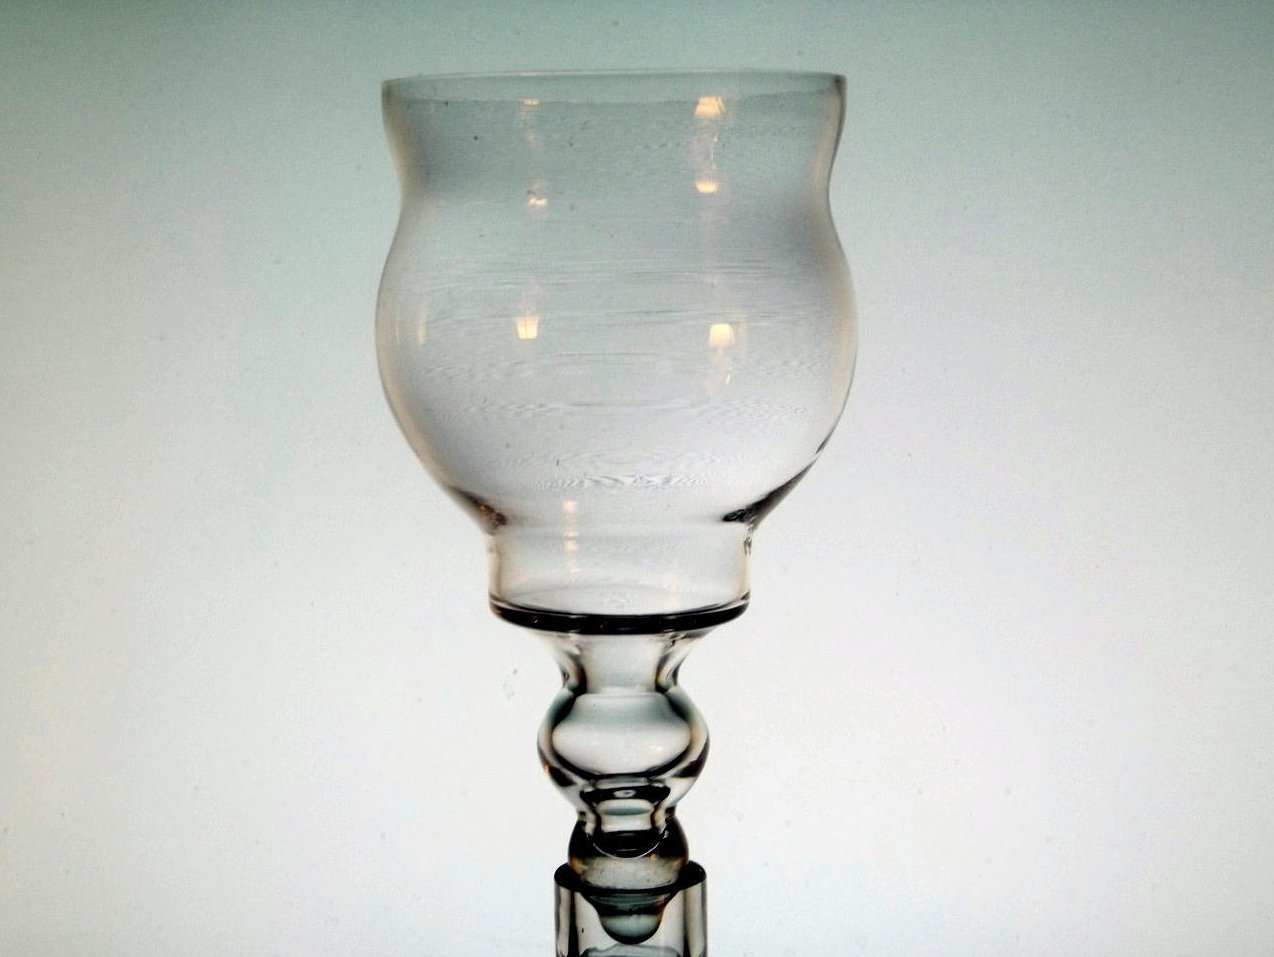 Hanging Candle Holder Hollow Point Teardrop 5 25 Inches X